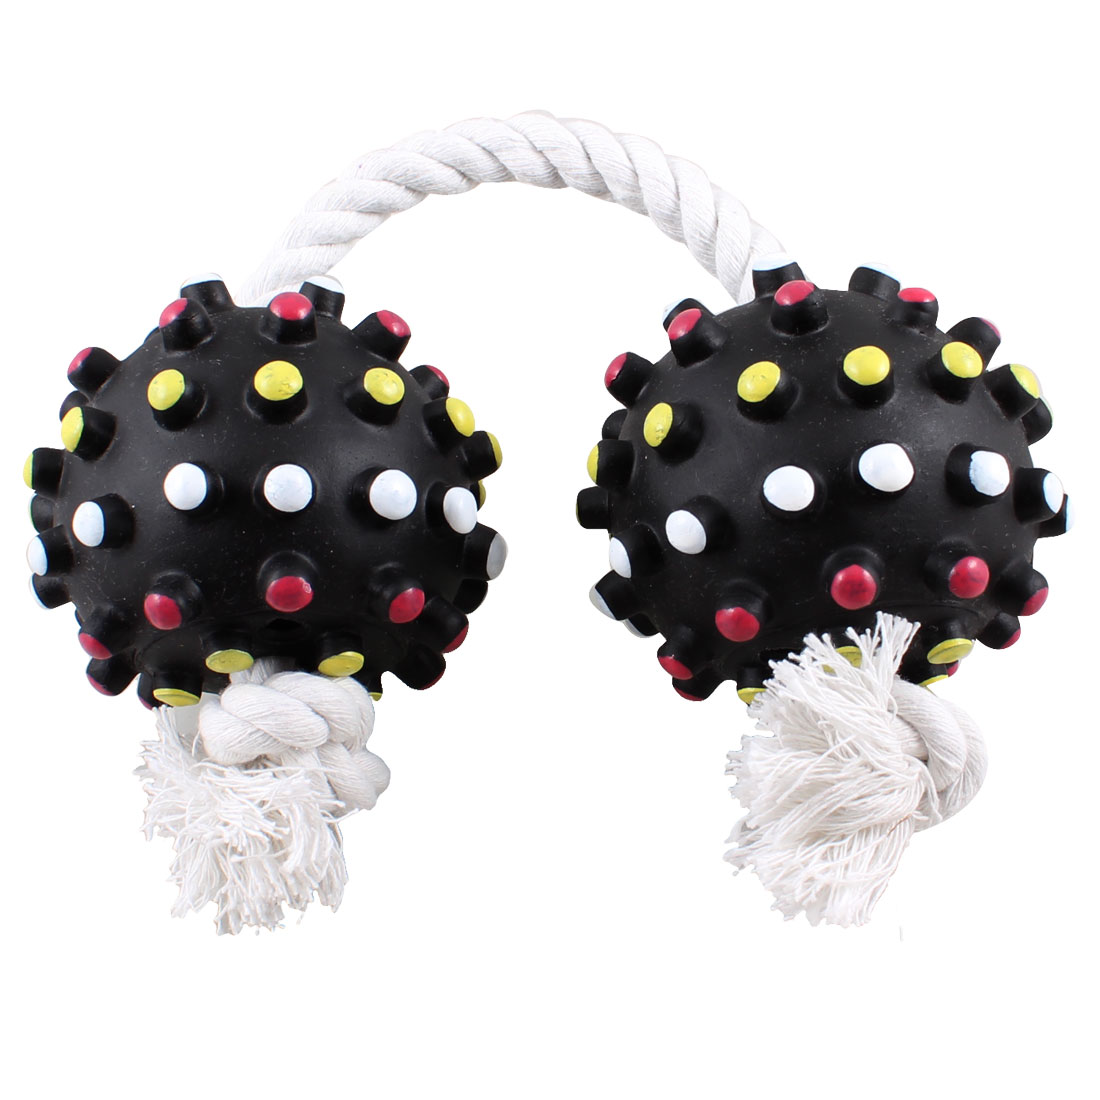 Dog Pet Catching Chew Toy White Braided Rope Knot Black Tug Balls